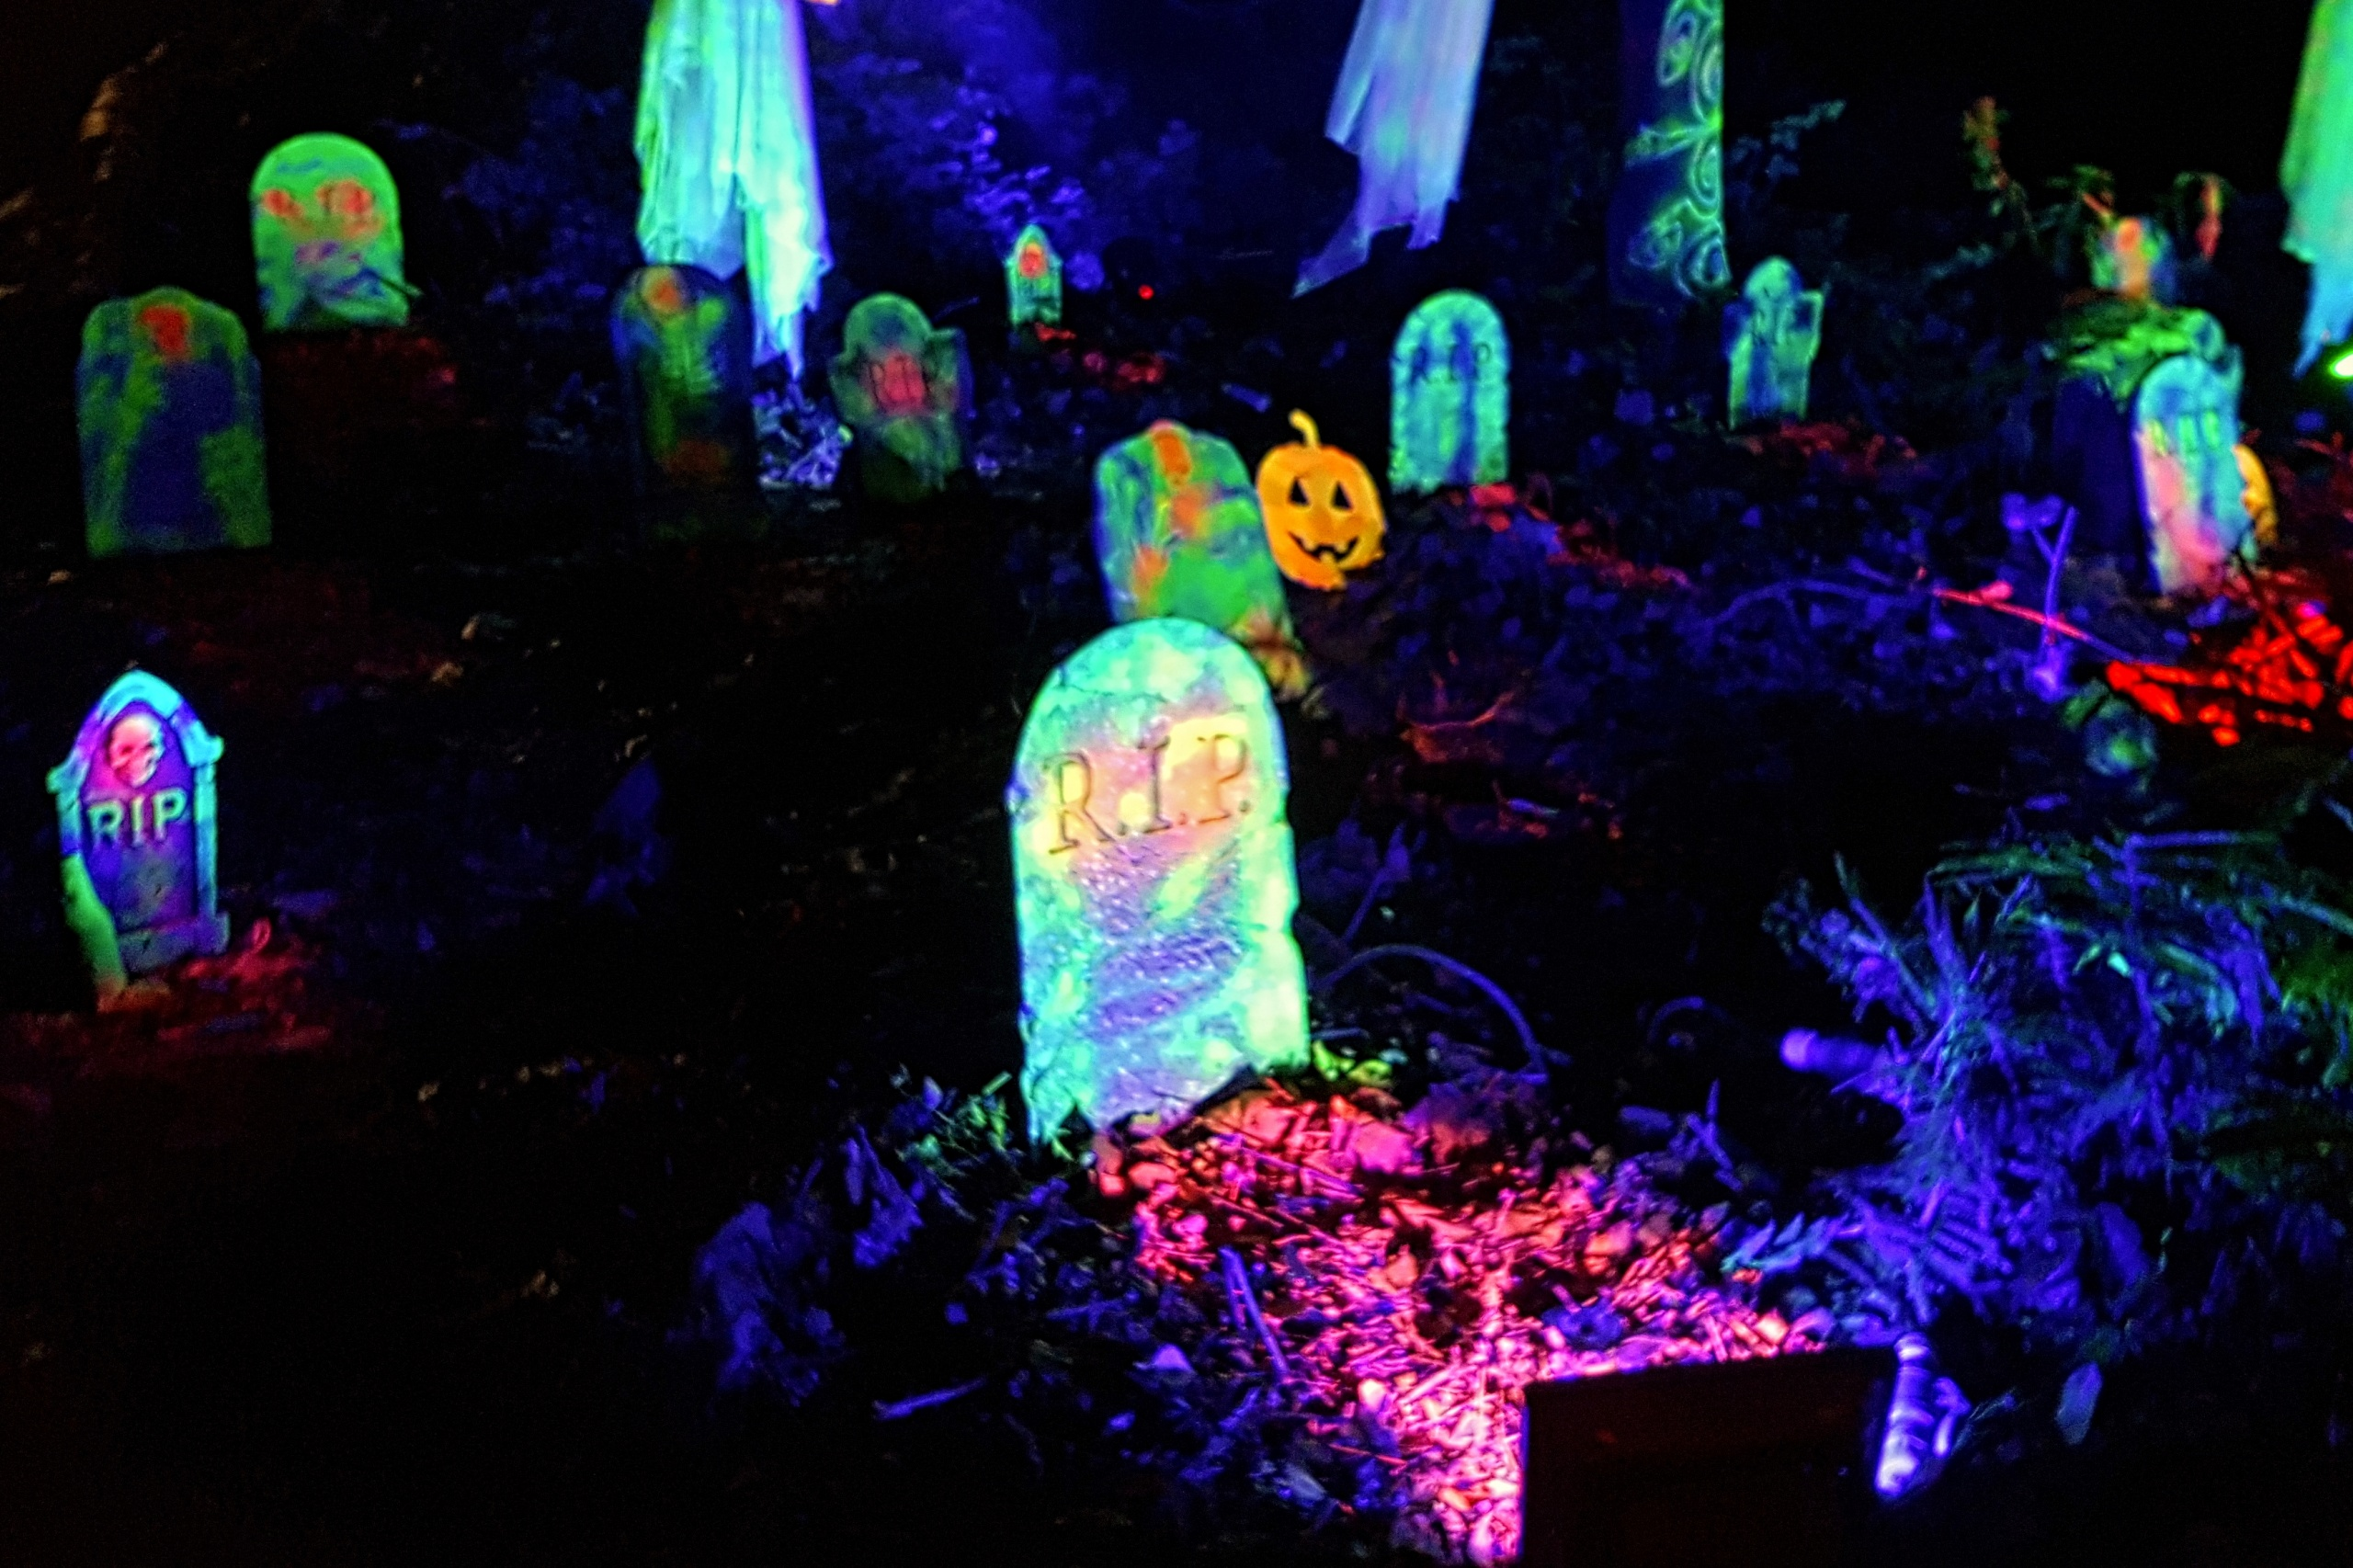 Halloween graveyard, at an outdoor event in an enchanted forest in North Wales. Created using LED lighting, UV reactive grave stones, ghosts, pumpkins.